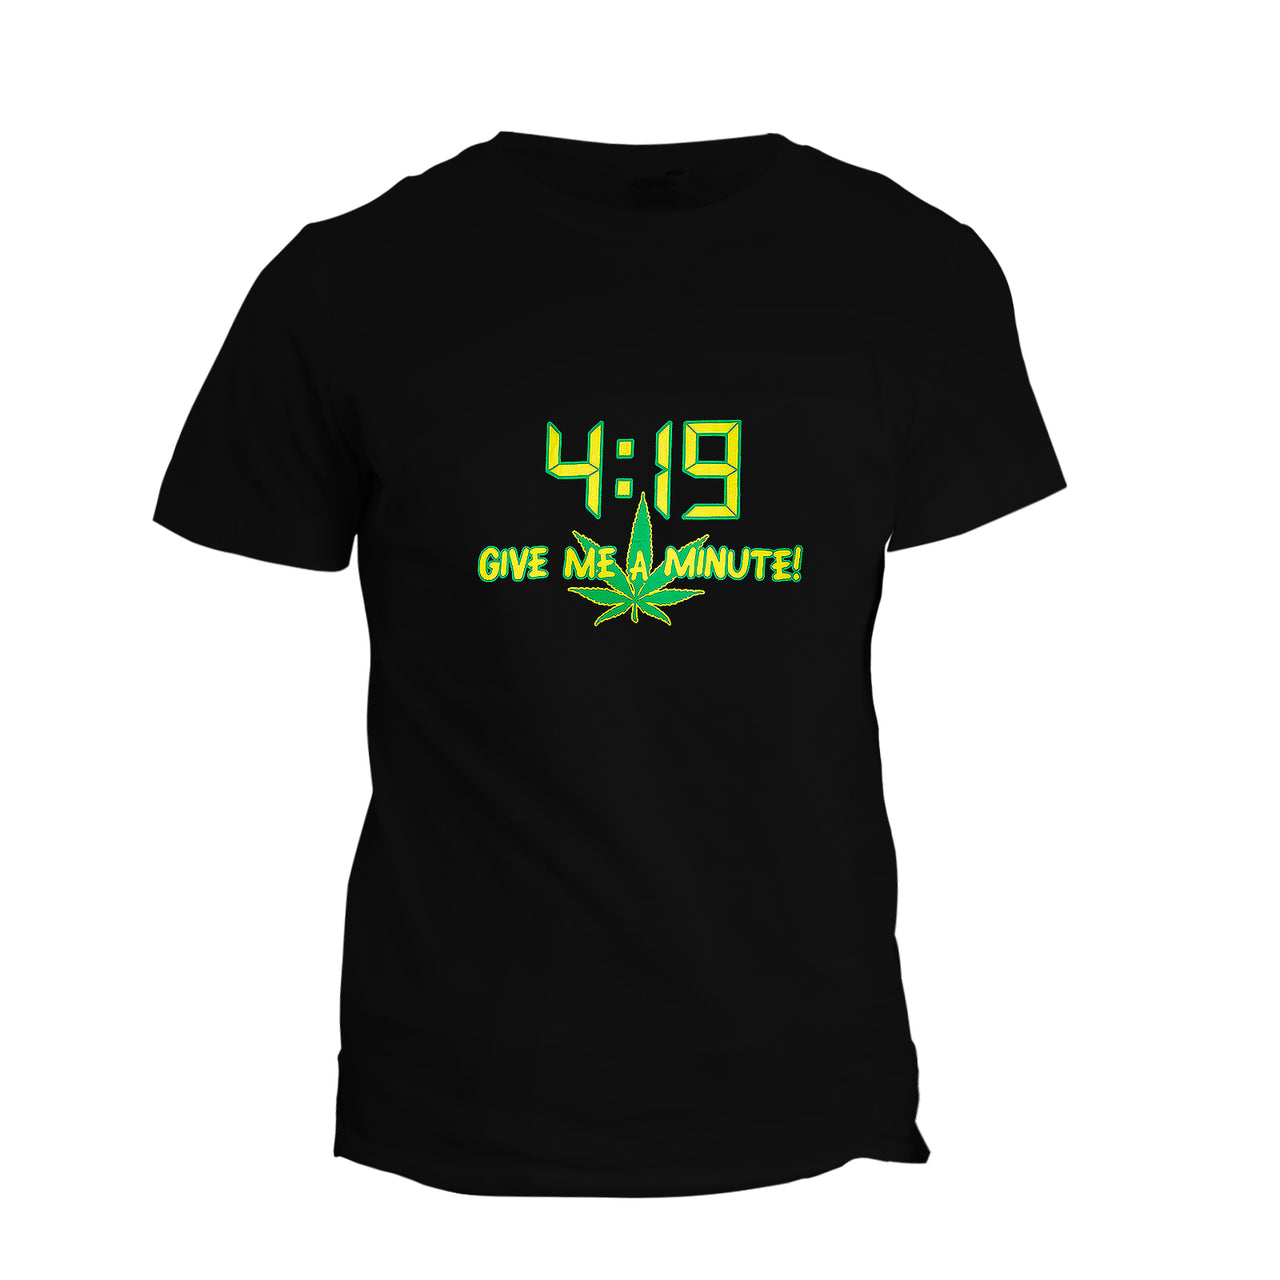 T-Shirt 4:19 Give Me A Minute